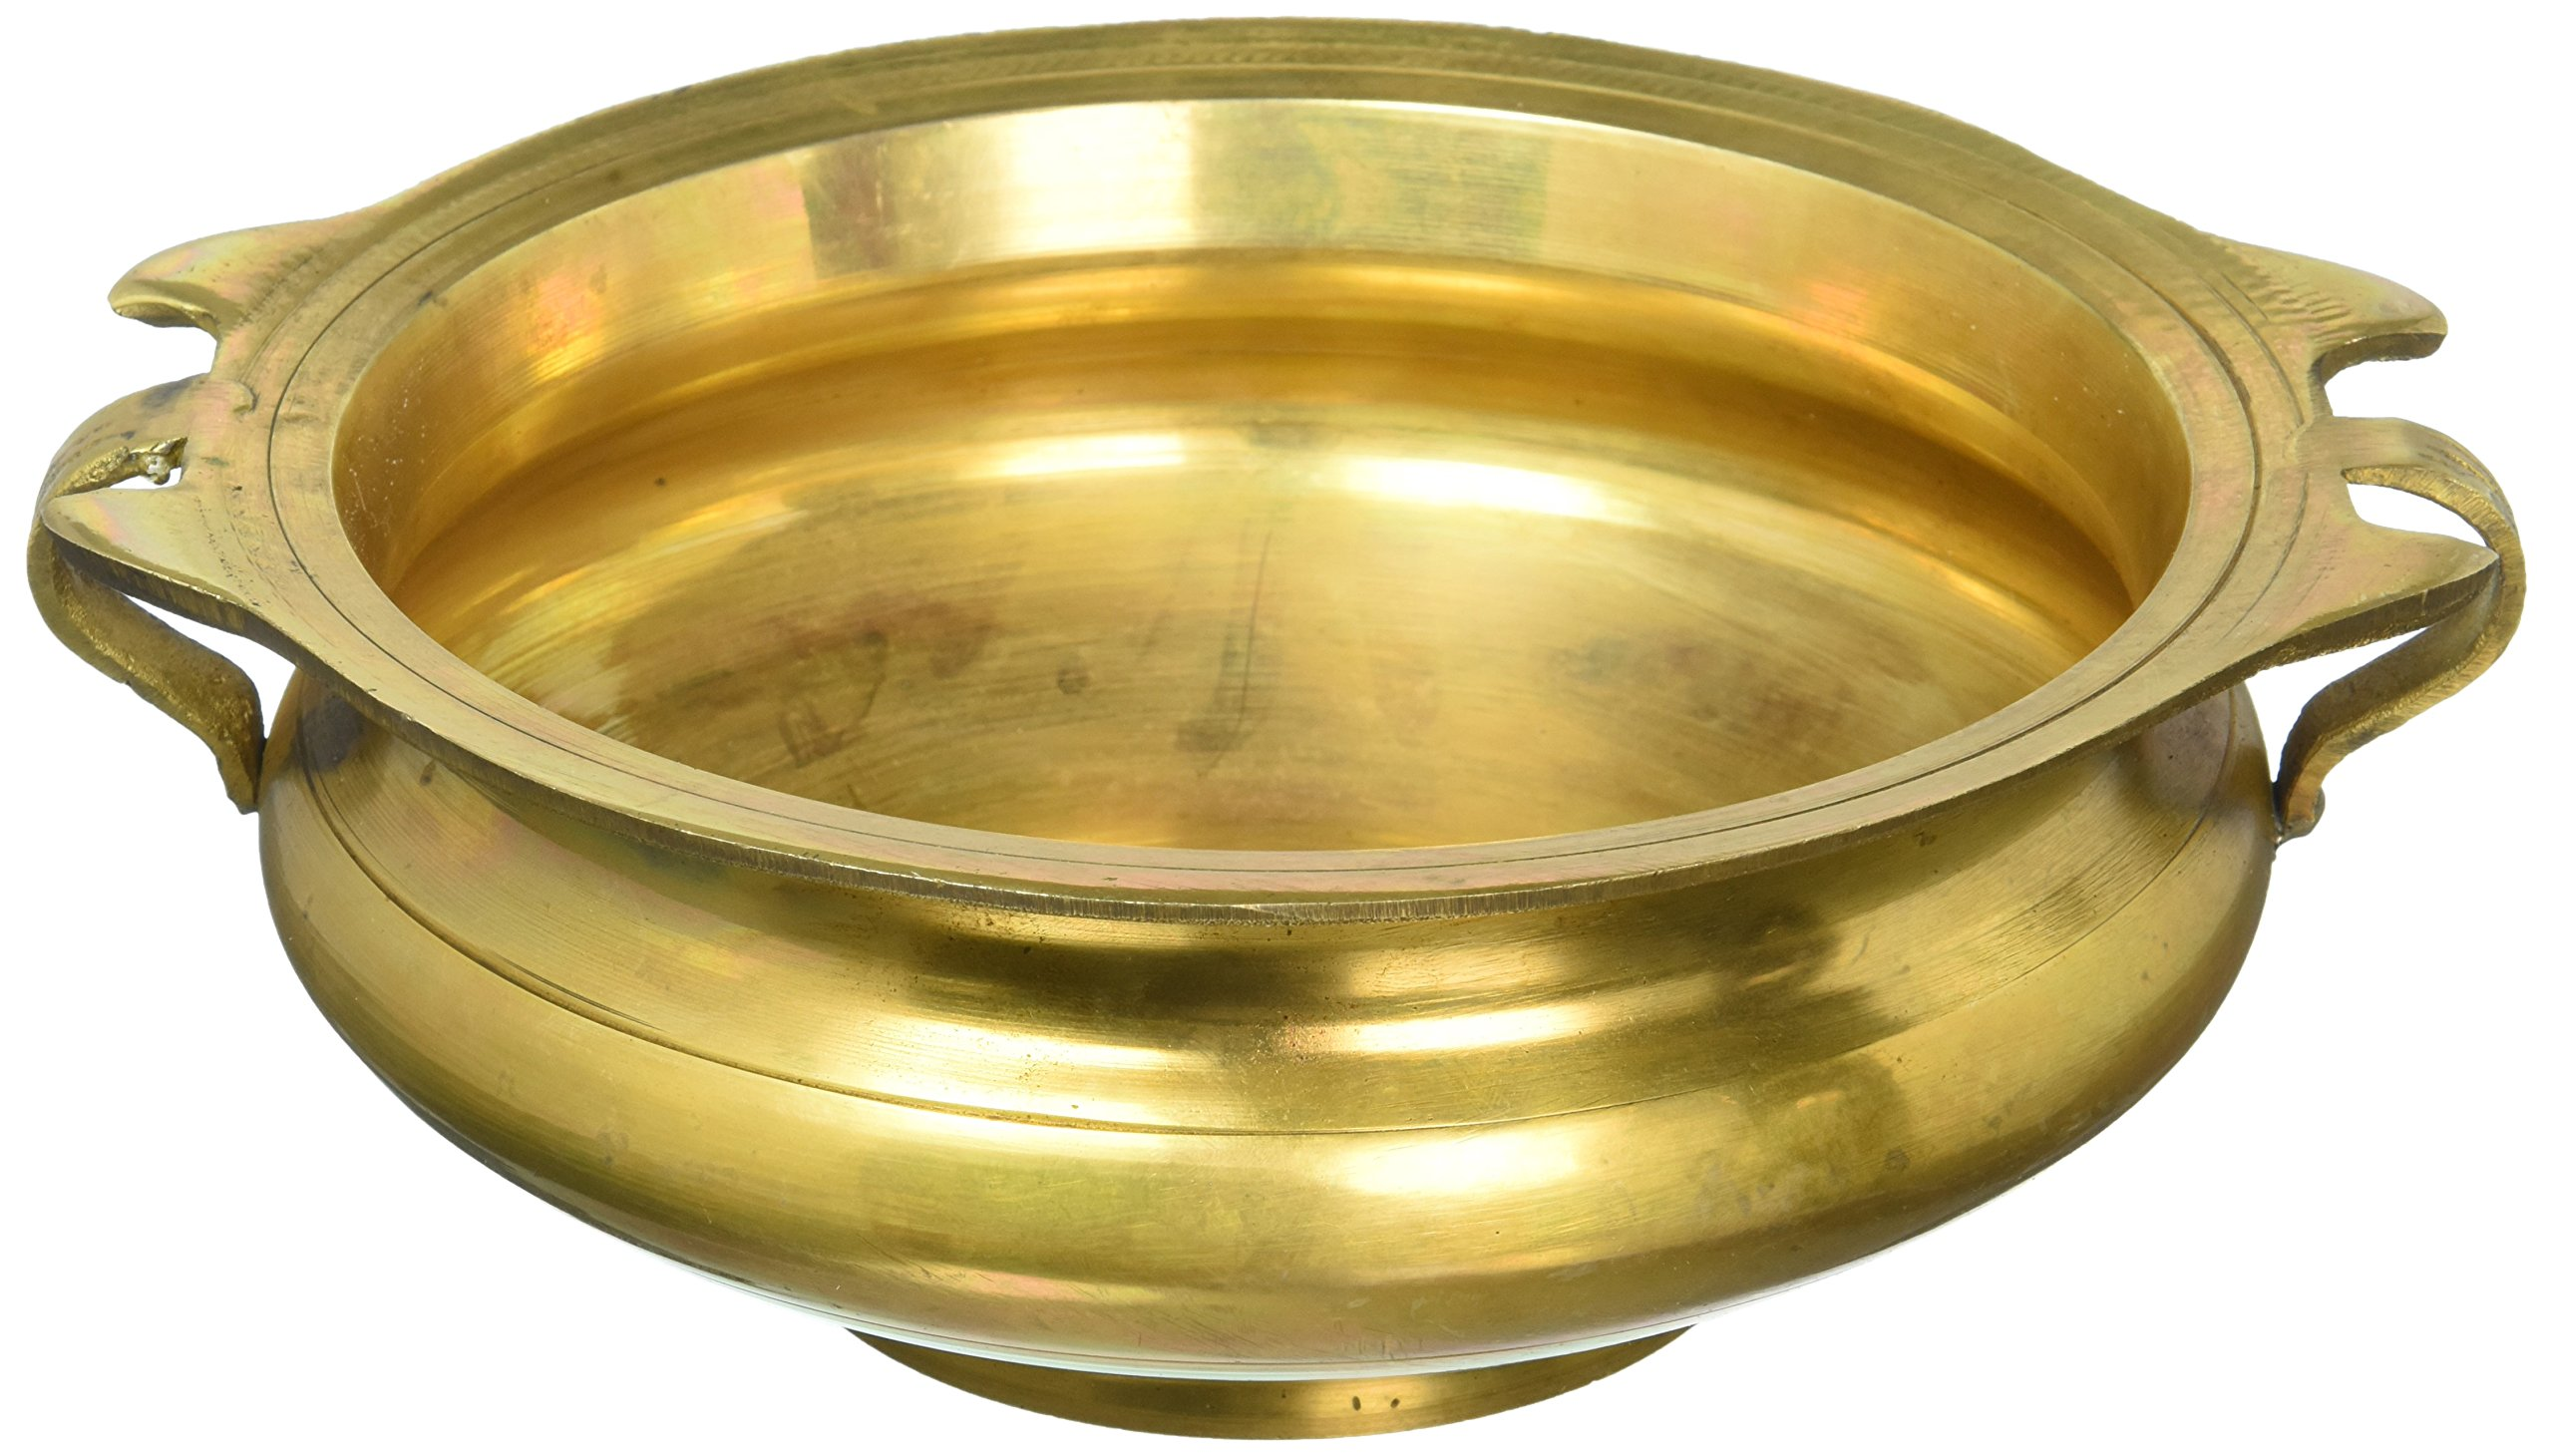 Handmade Brass Urli - 3 by 8 Inch Uruli Bowl - Suitable for Decorating, Offerings & Even Serving Food - Artisan Crafted in India